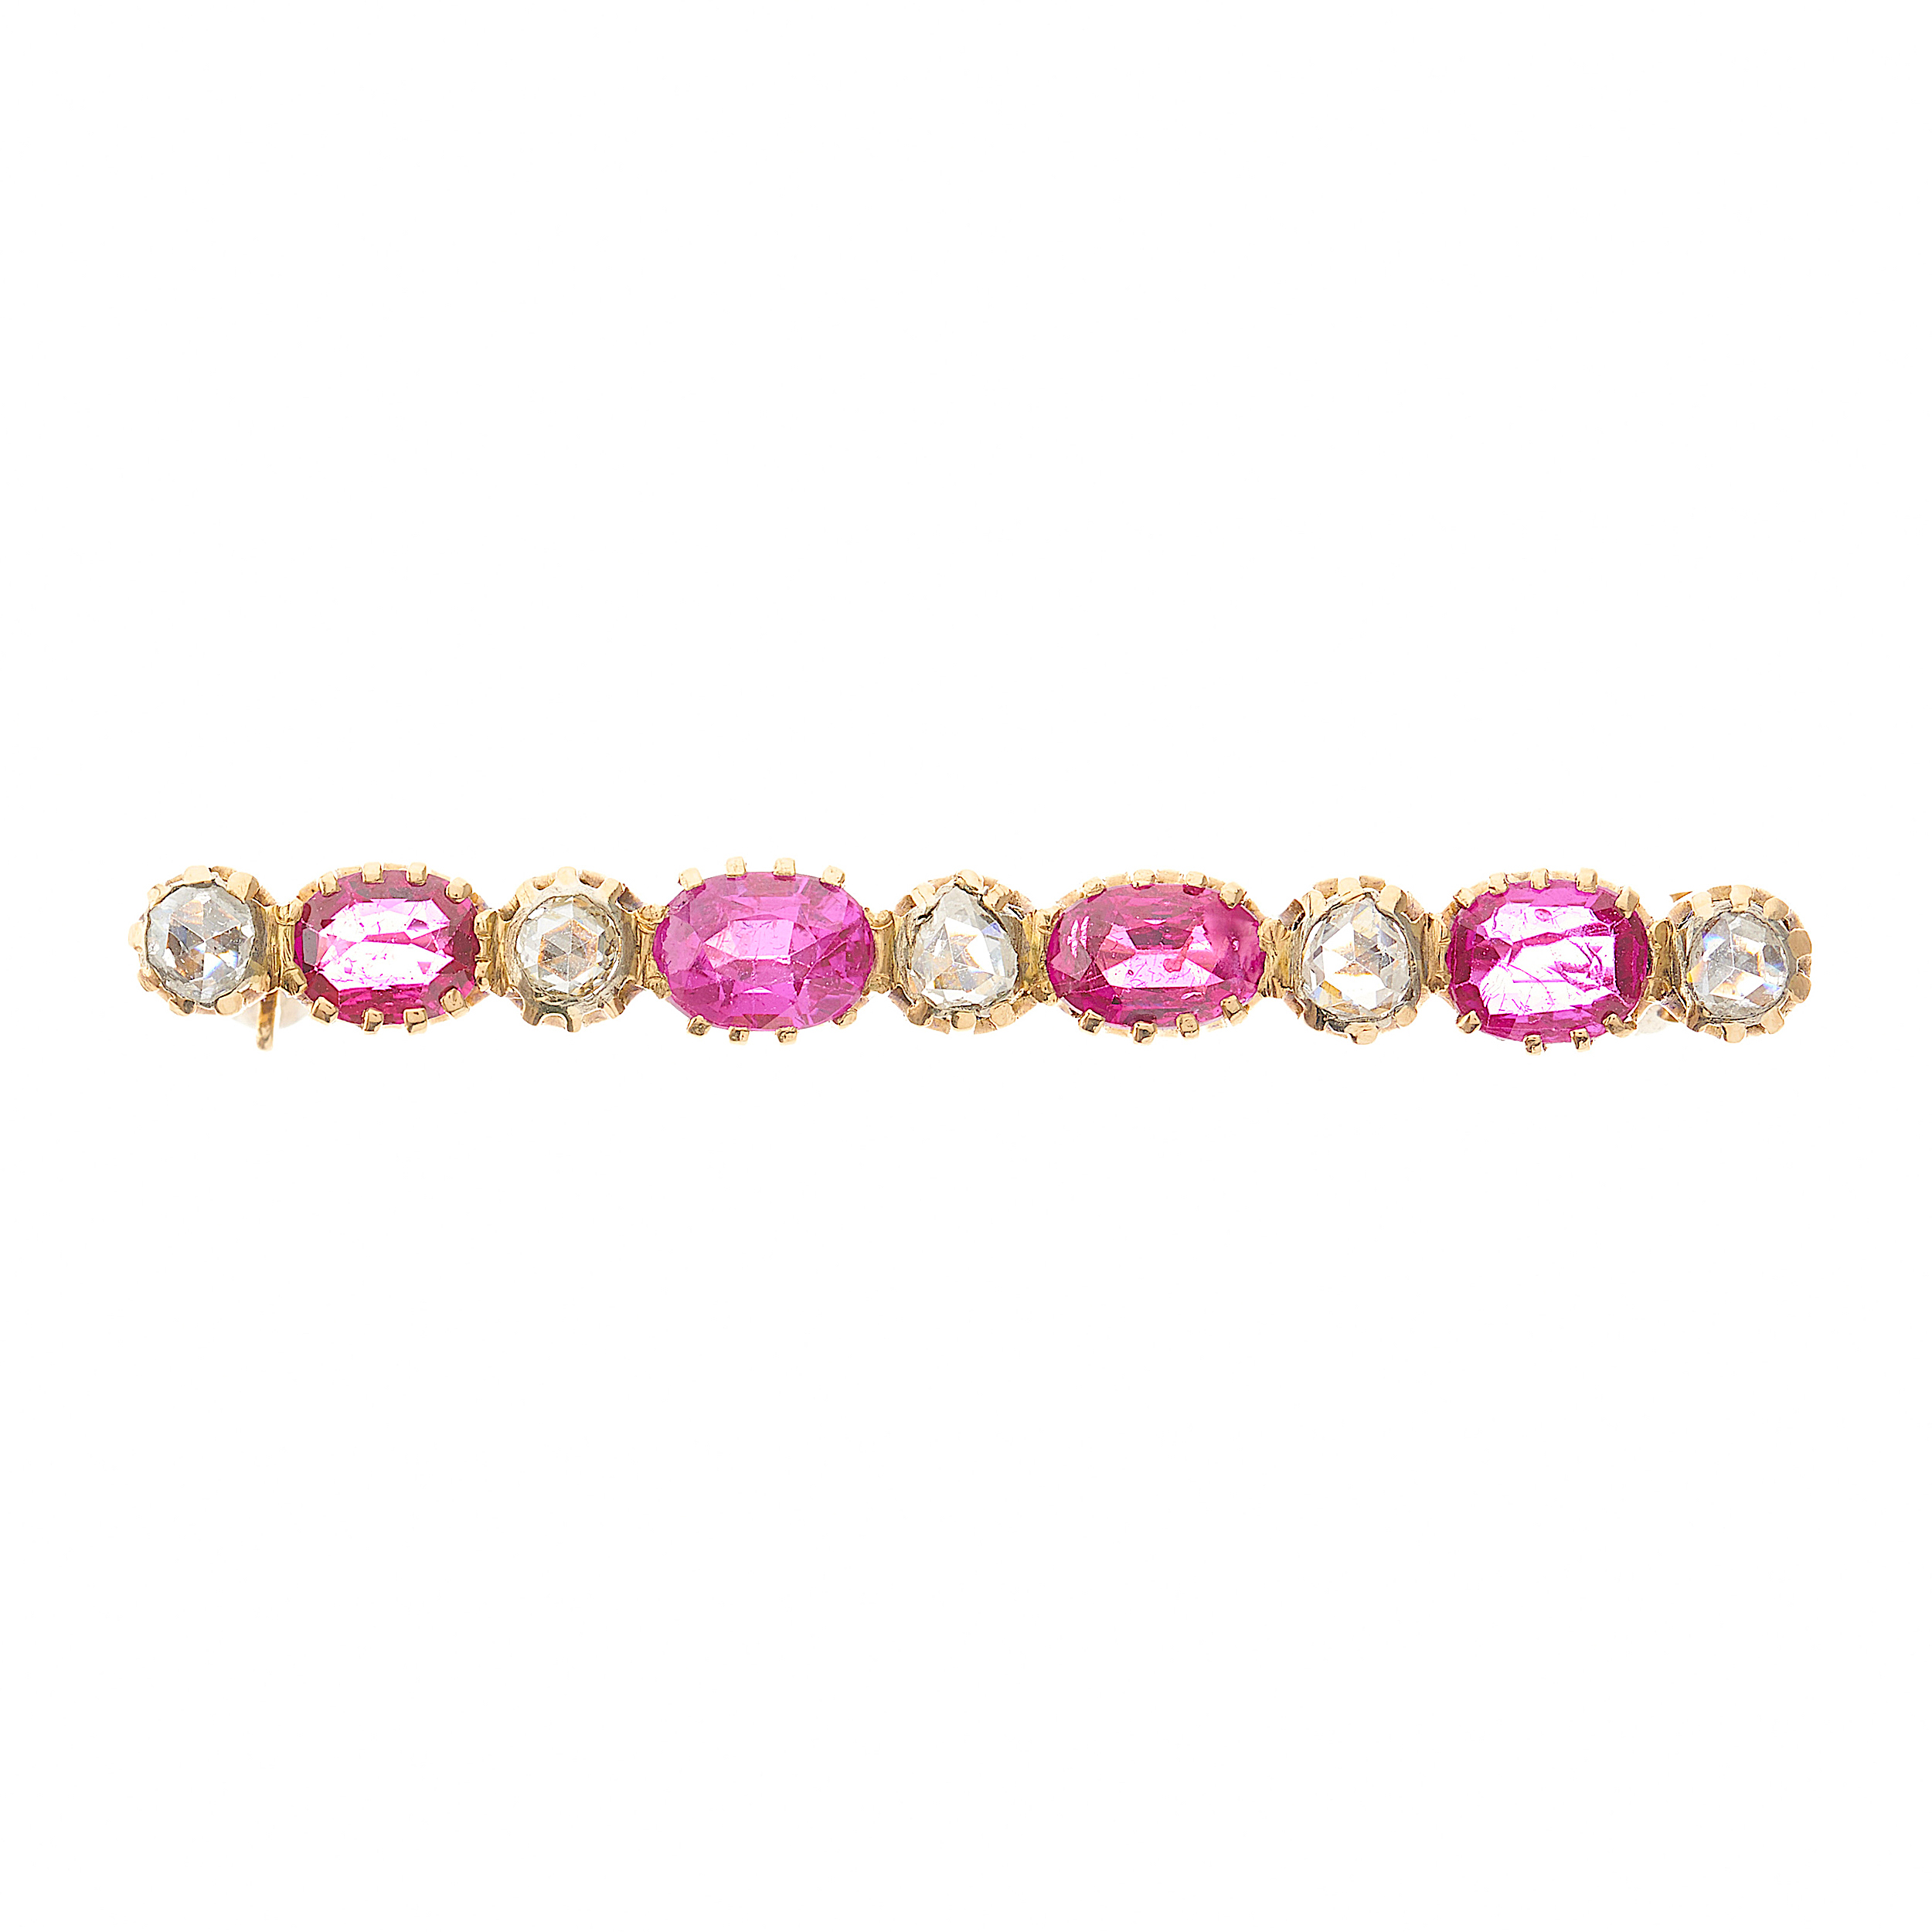 A late 19th century gold, ruby and diamond bar brooch